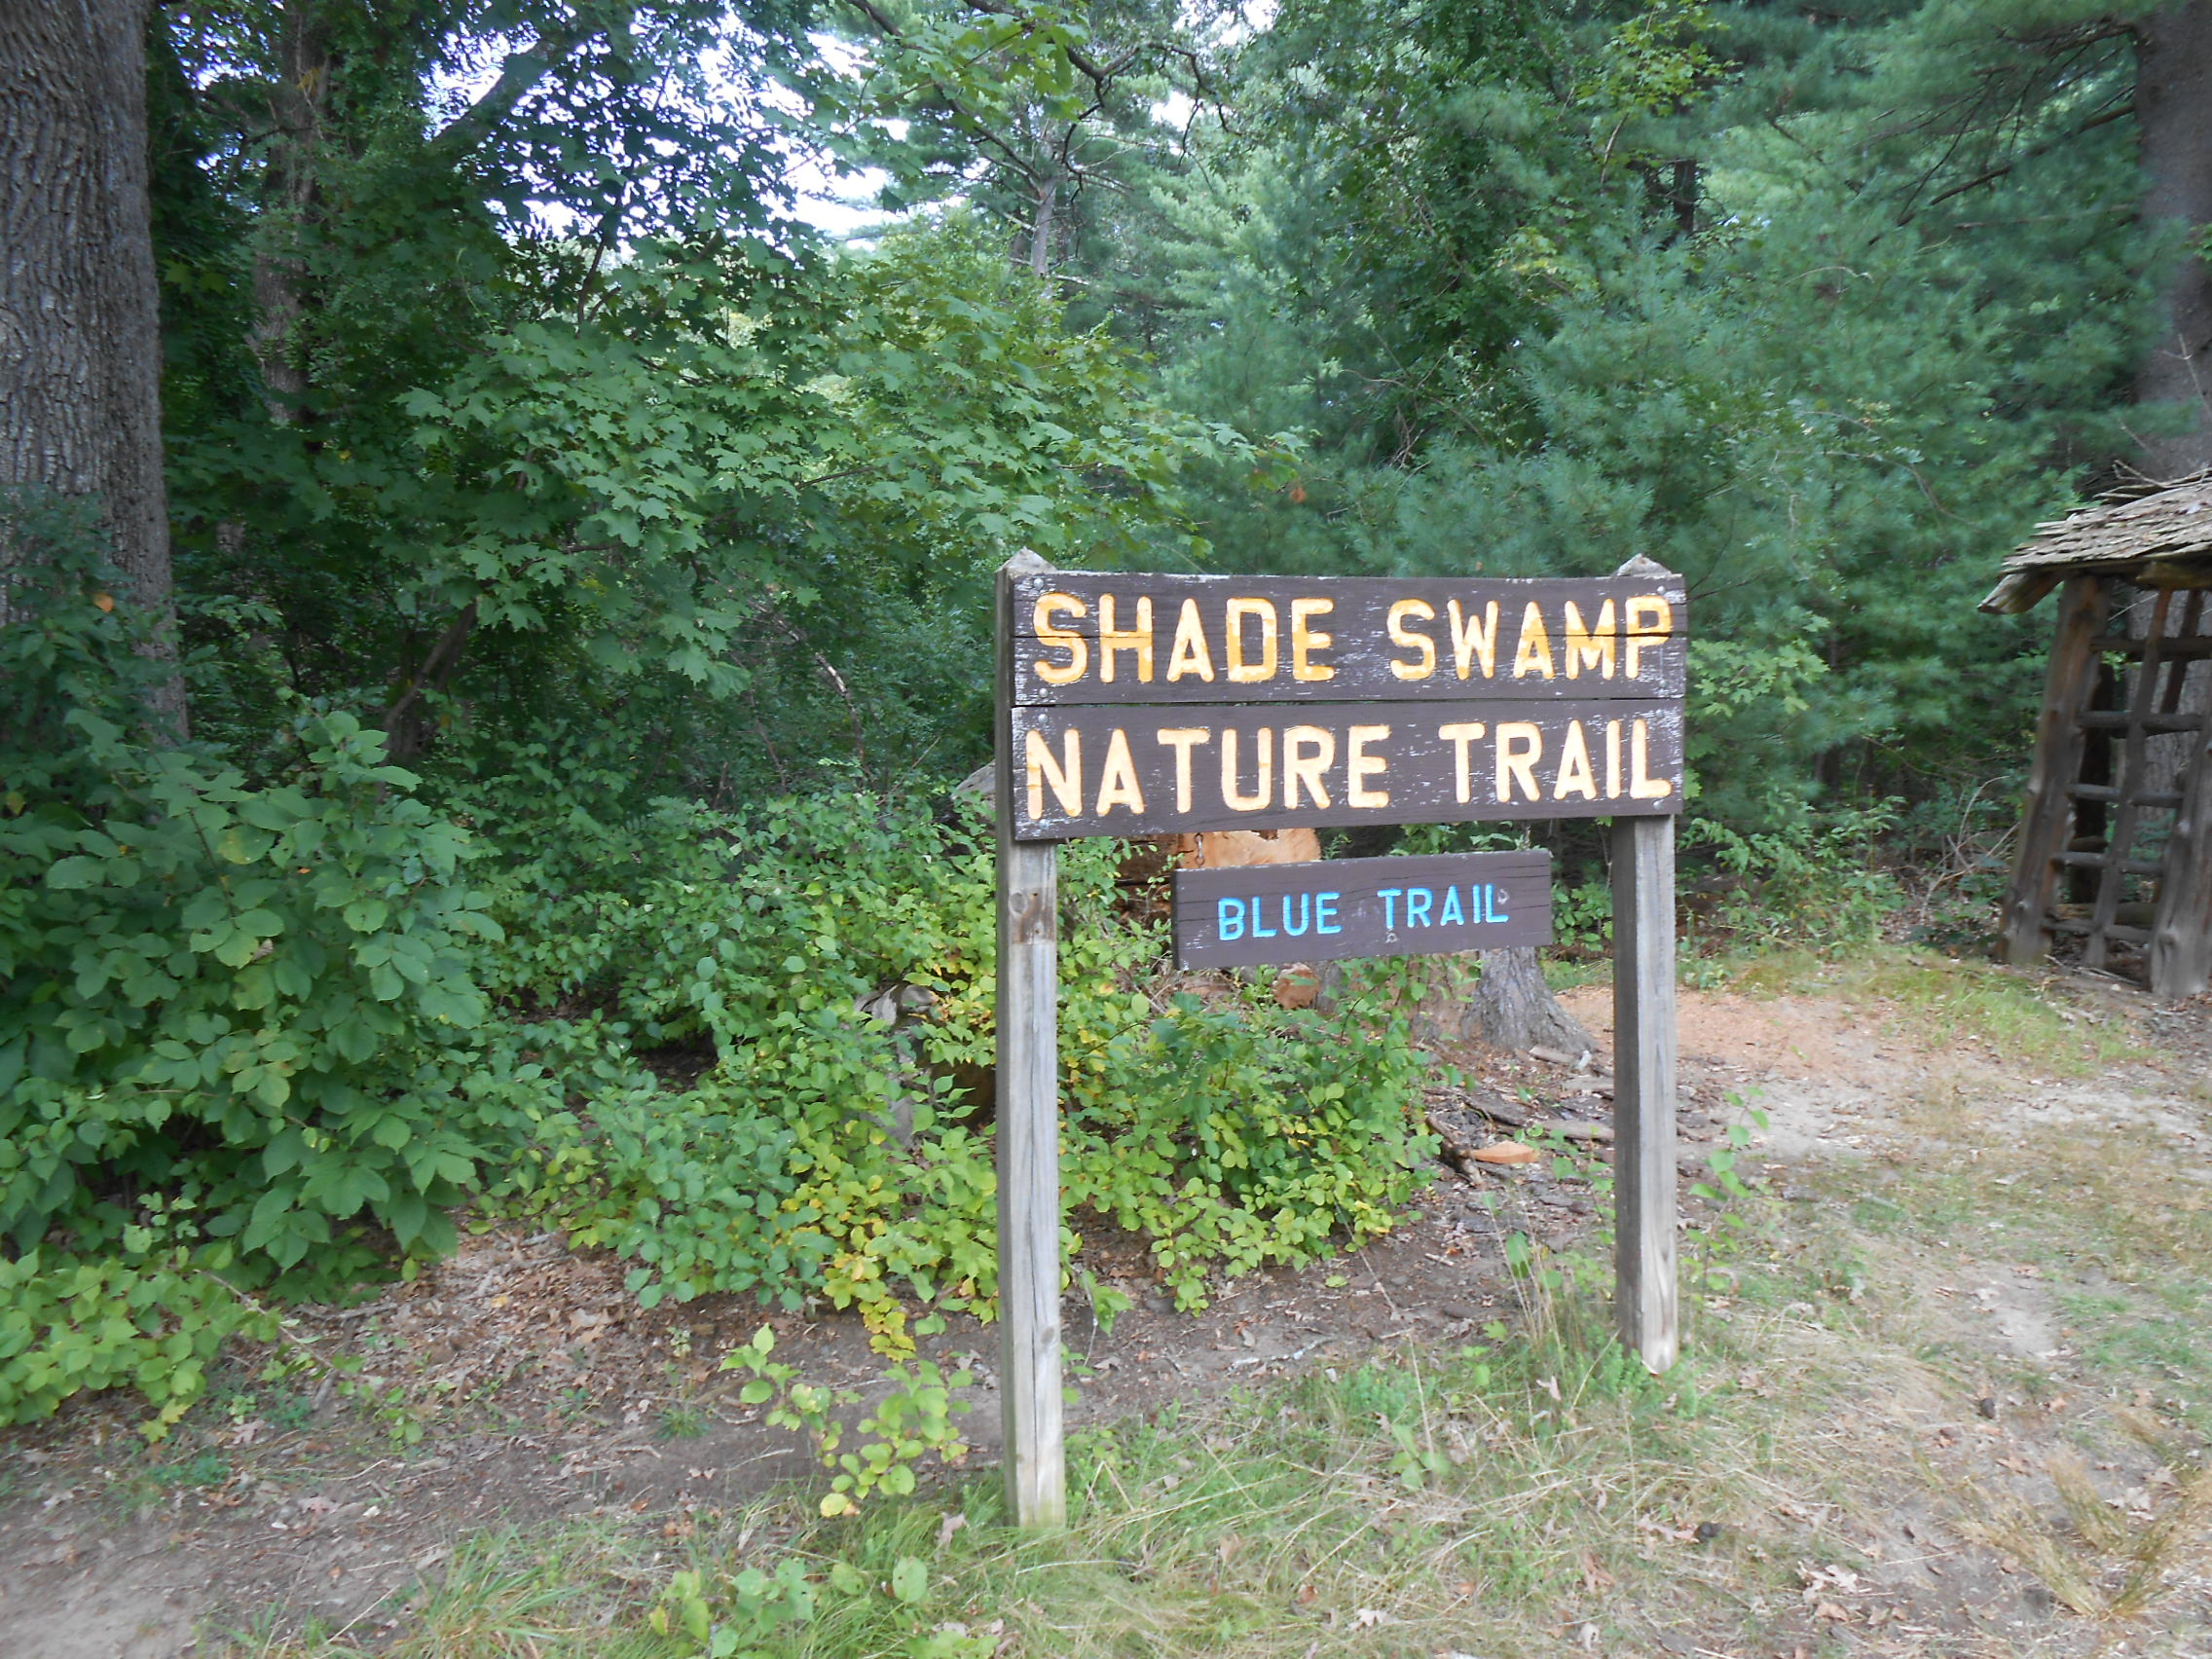 Shade Swamp Nature Trail sign in parking area